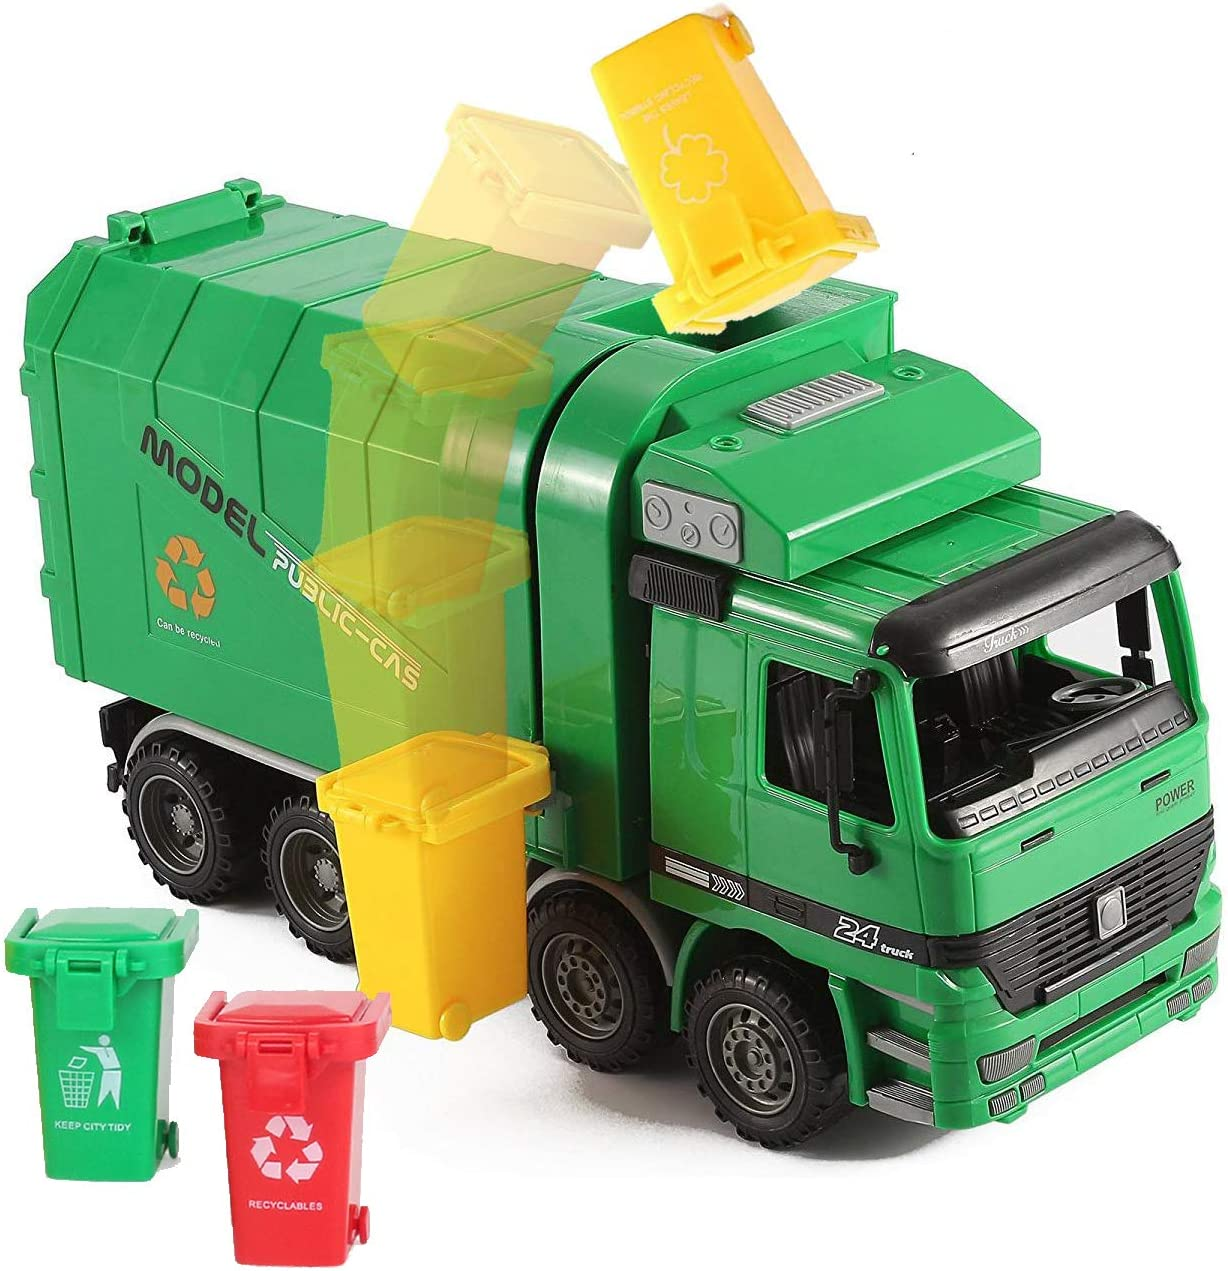 "Liberty Imports 14"" Oversized Friction Powered Recycling Garbage Truck Toy for Kids with Side Loading and Back Dump"